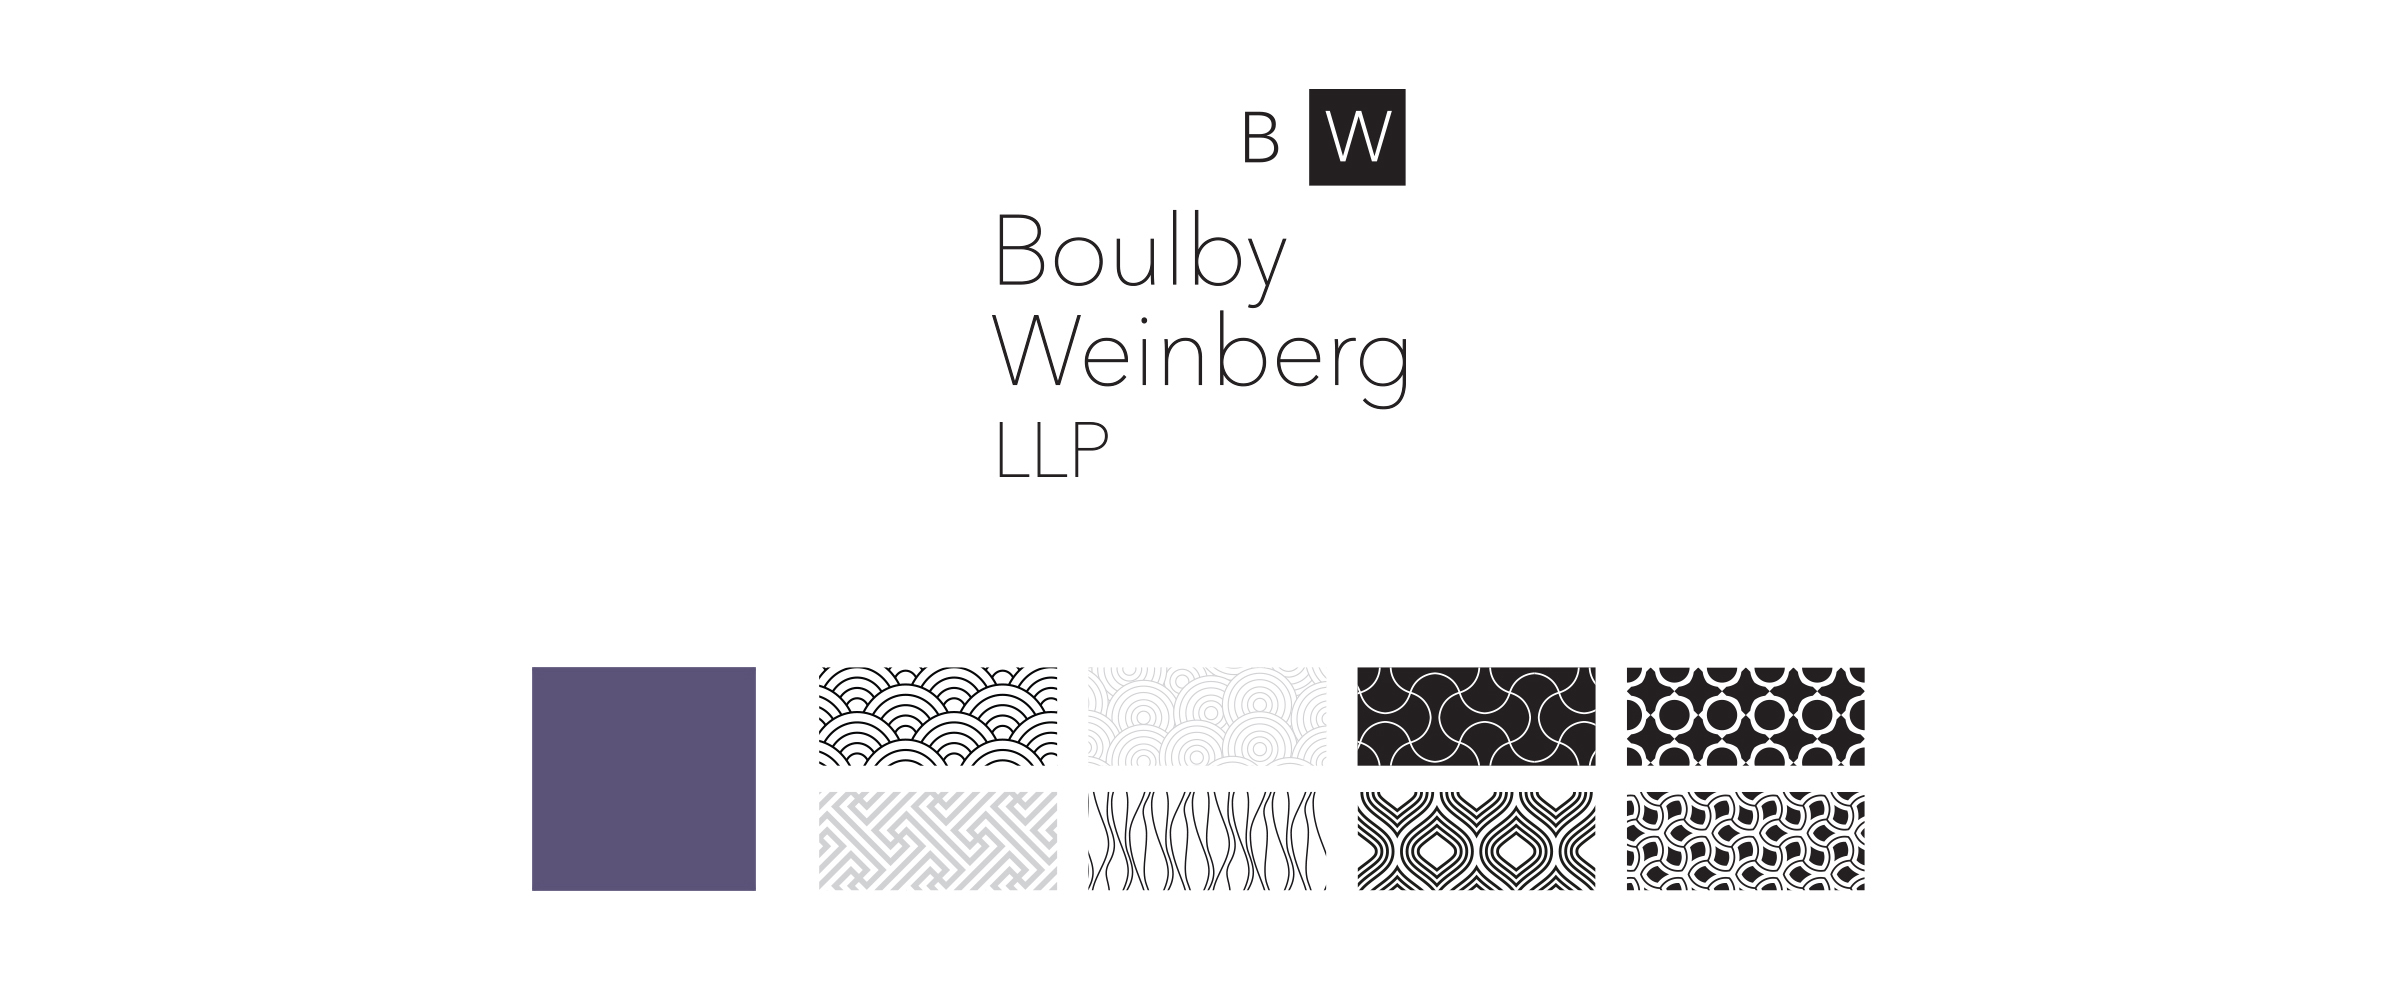 Logo, Colour, and Patterns